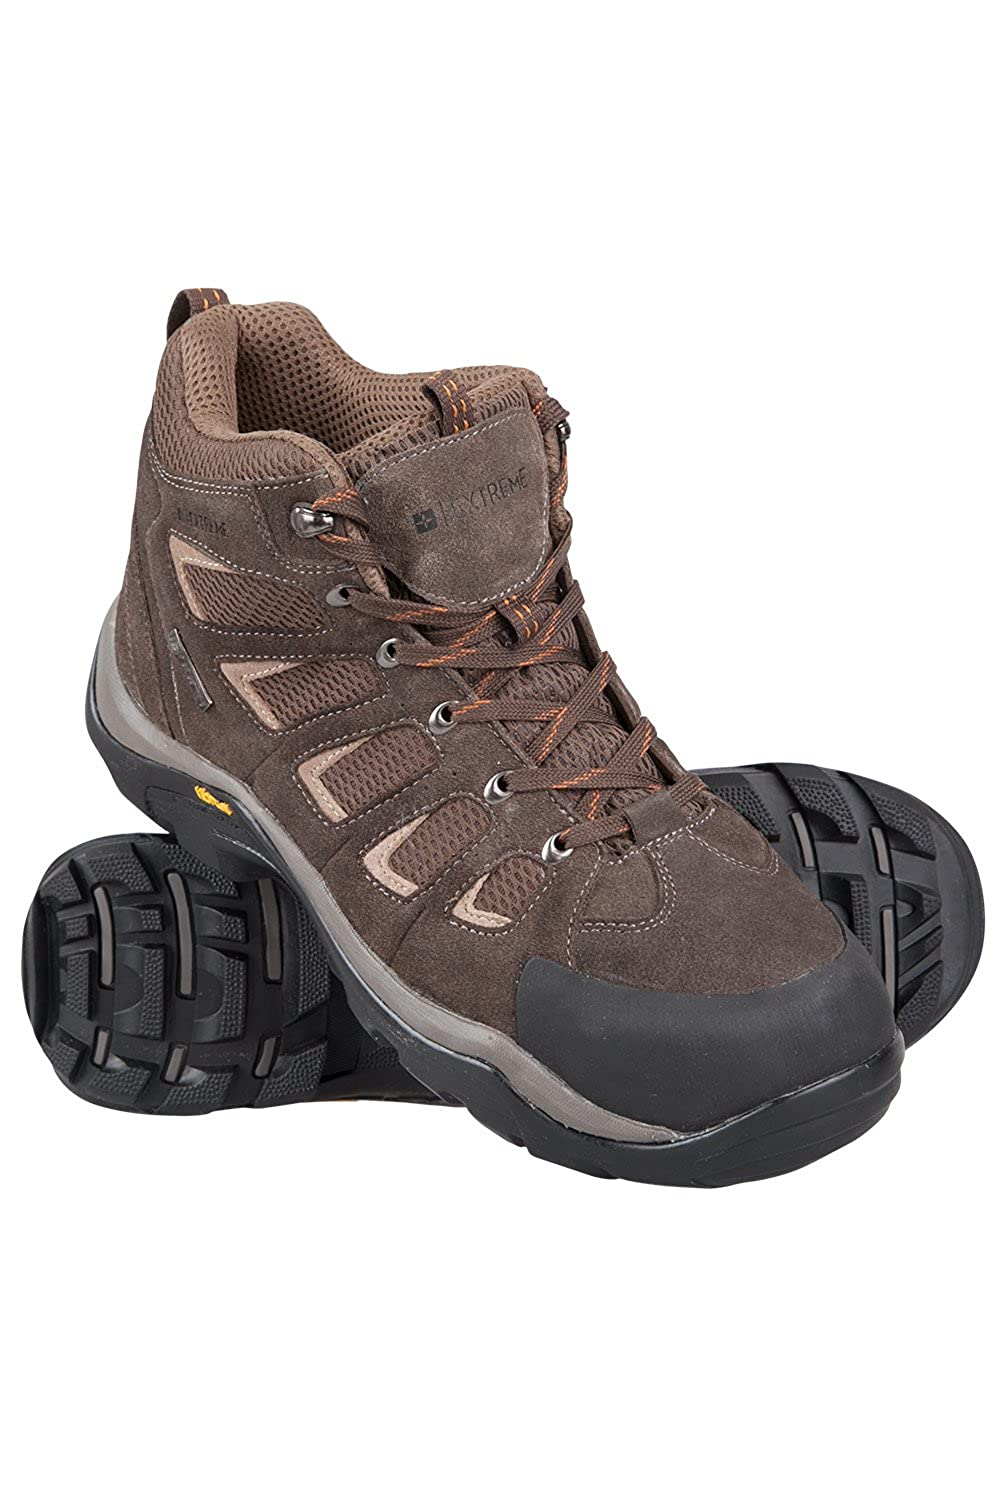 Mountain Warehouse Field Mens Boots Vibram All Season Walking Shoes